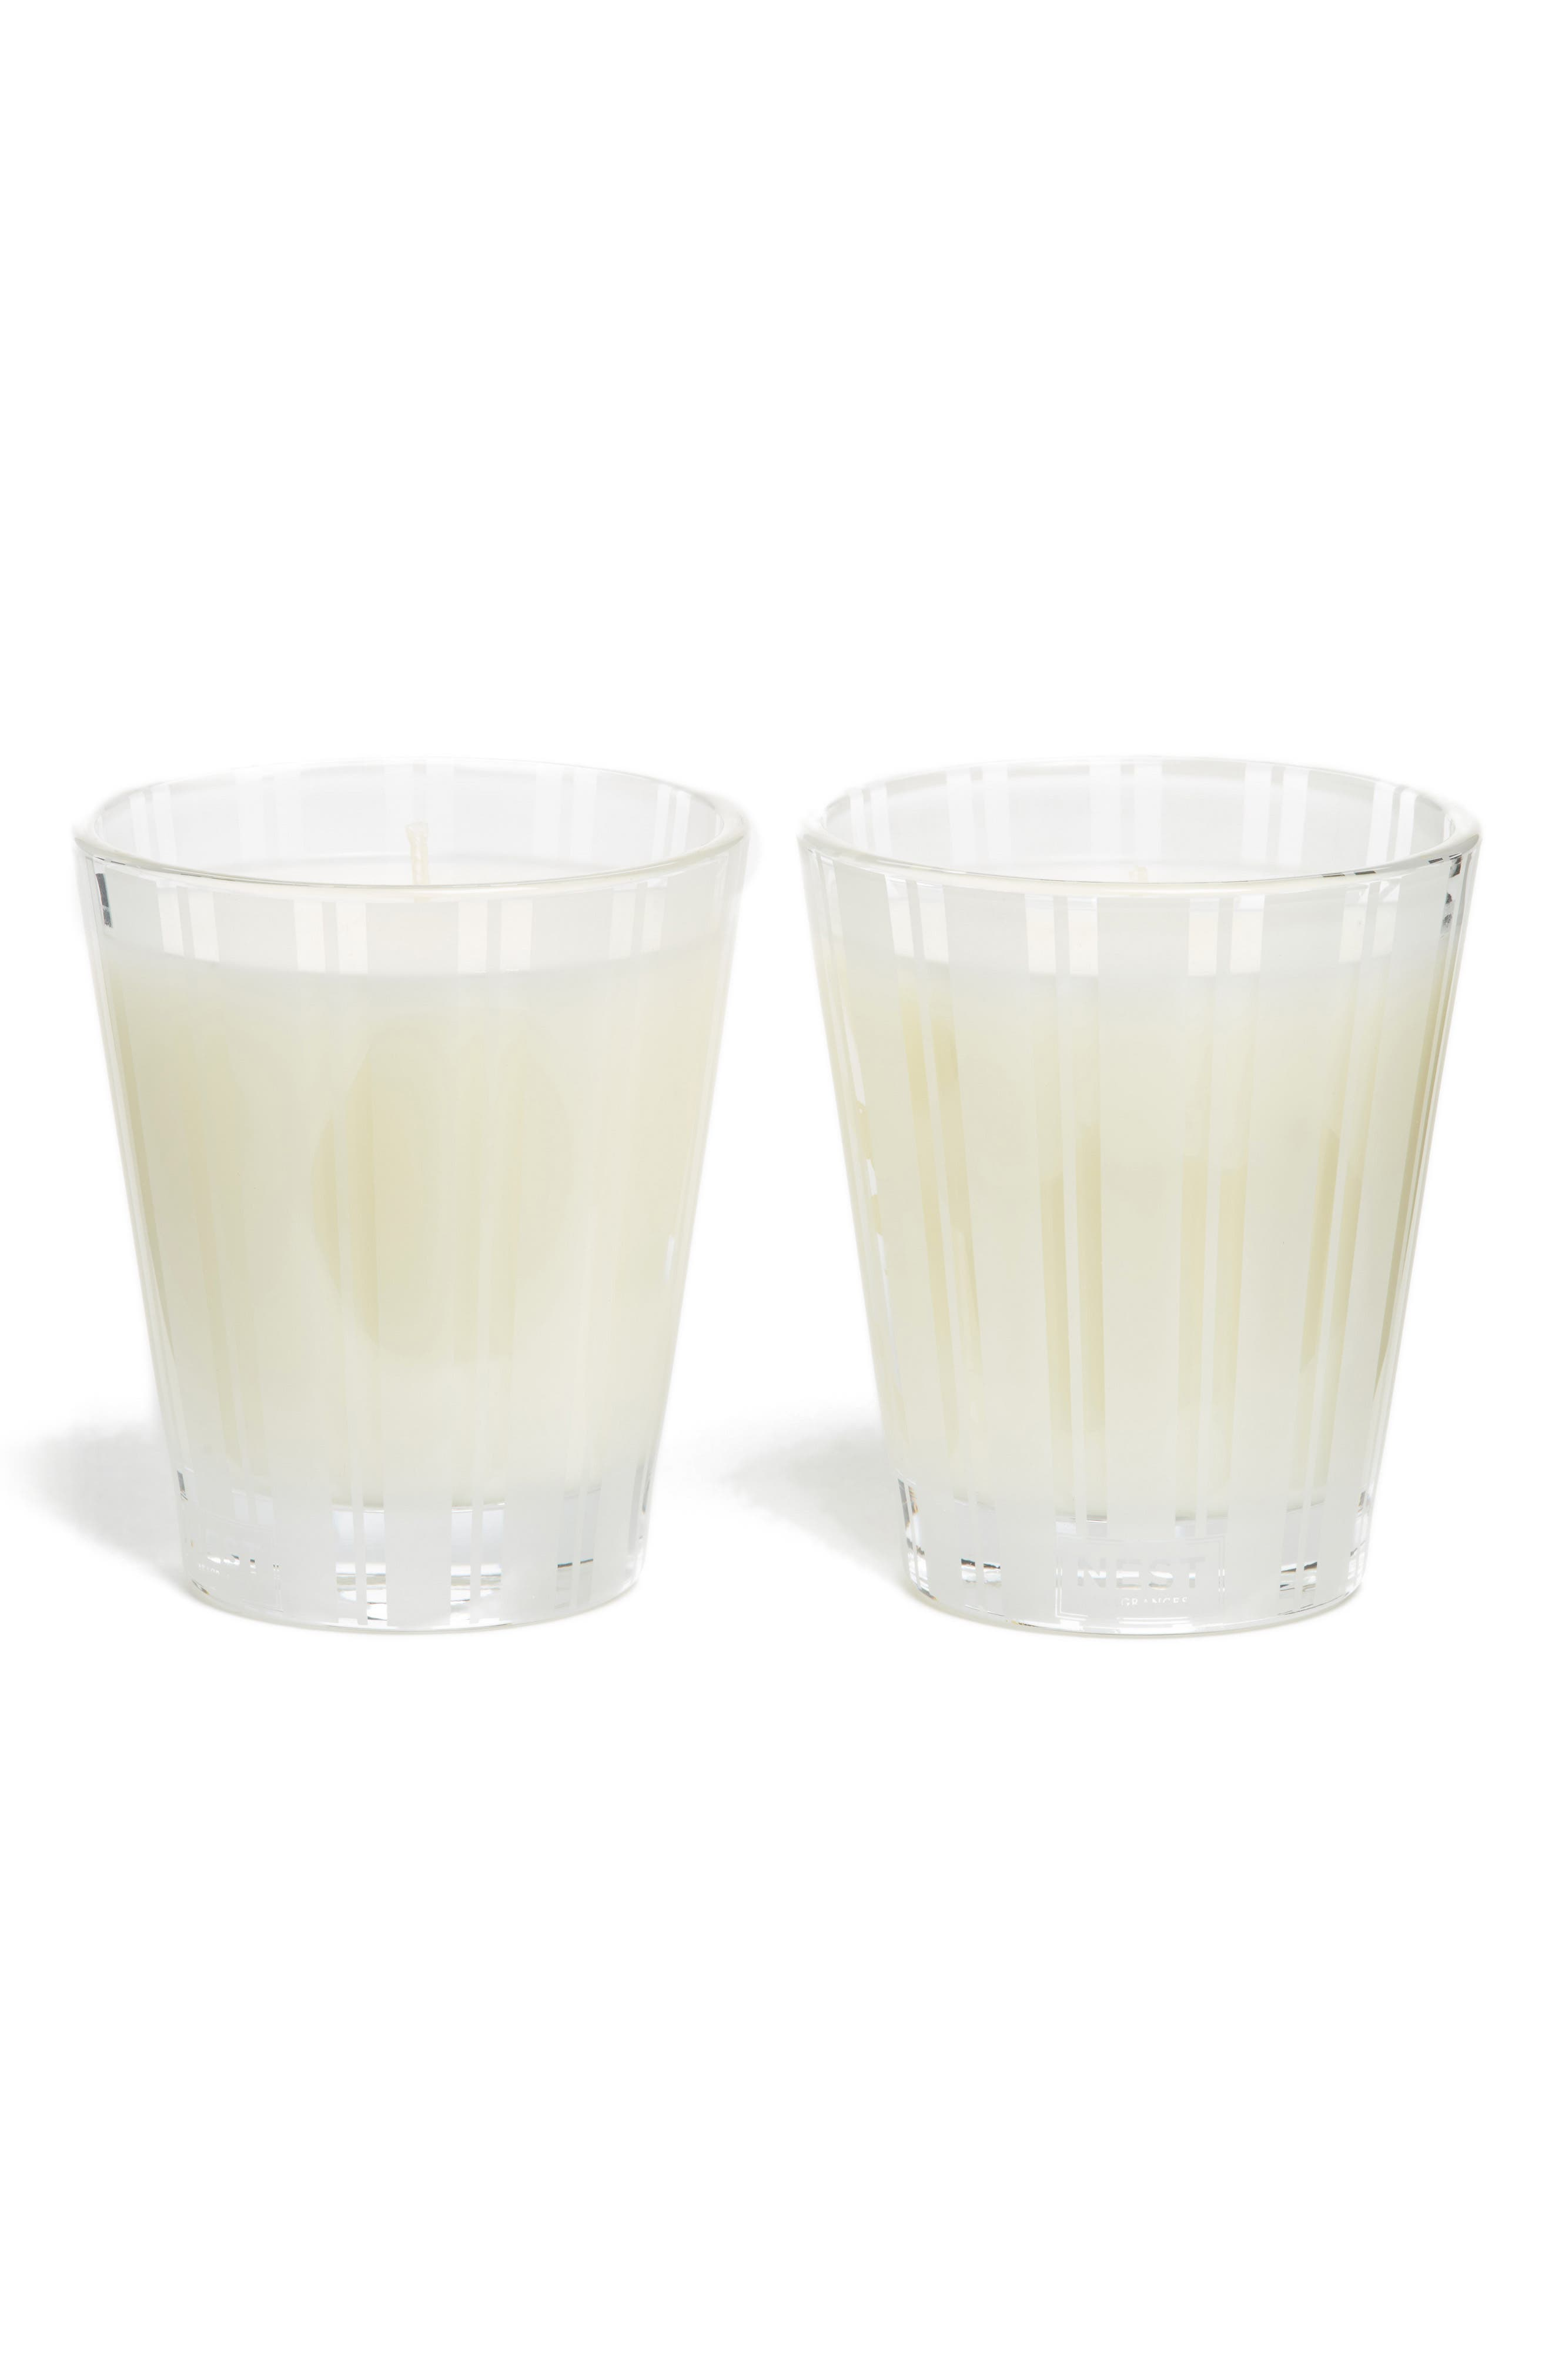 Main Image - NEST Fragrances Grapefruit Scented Candle Duo ($80 Value)